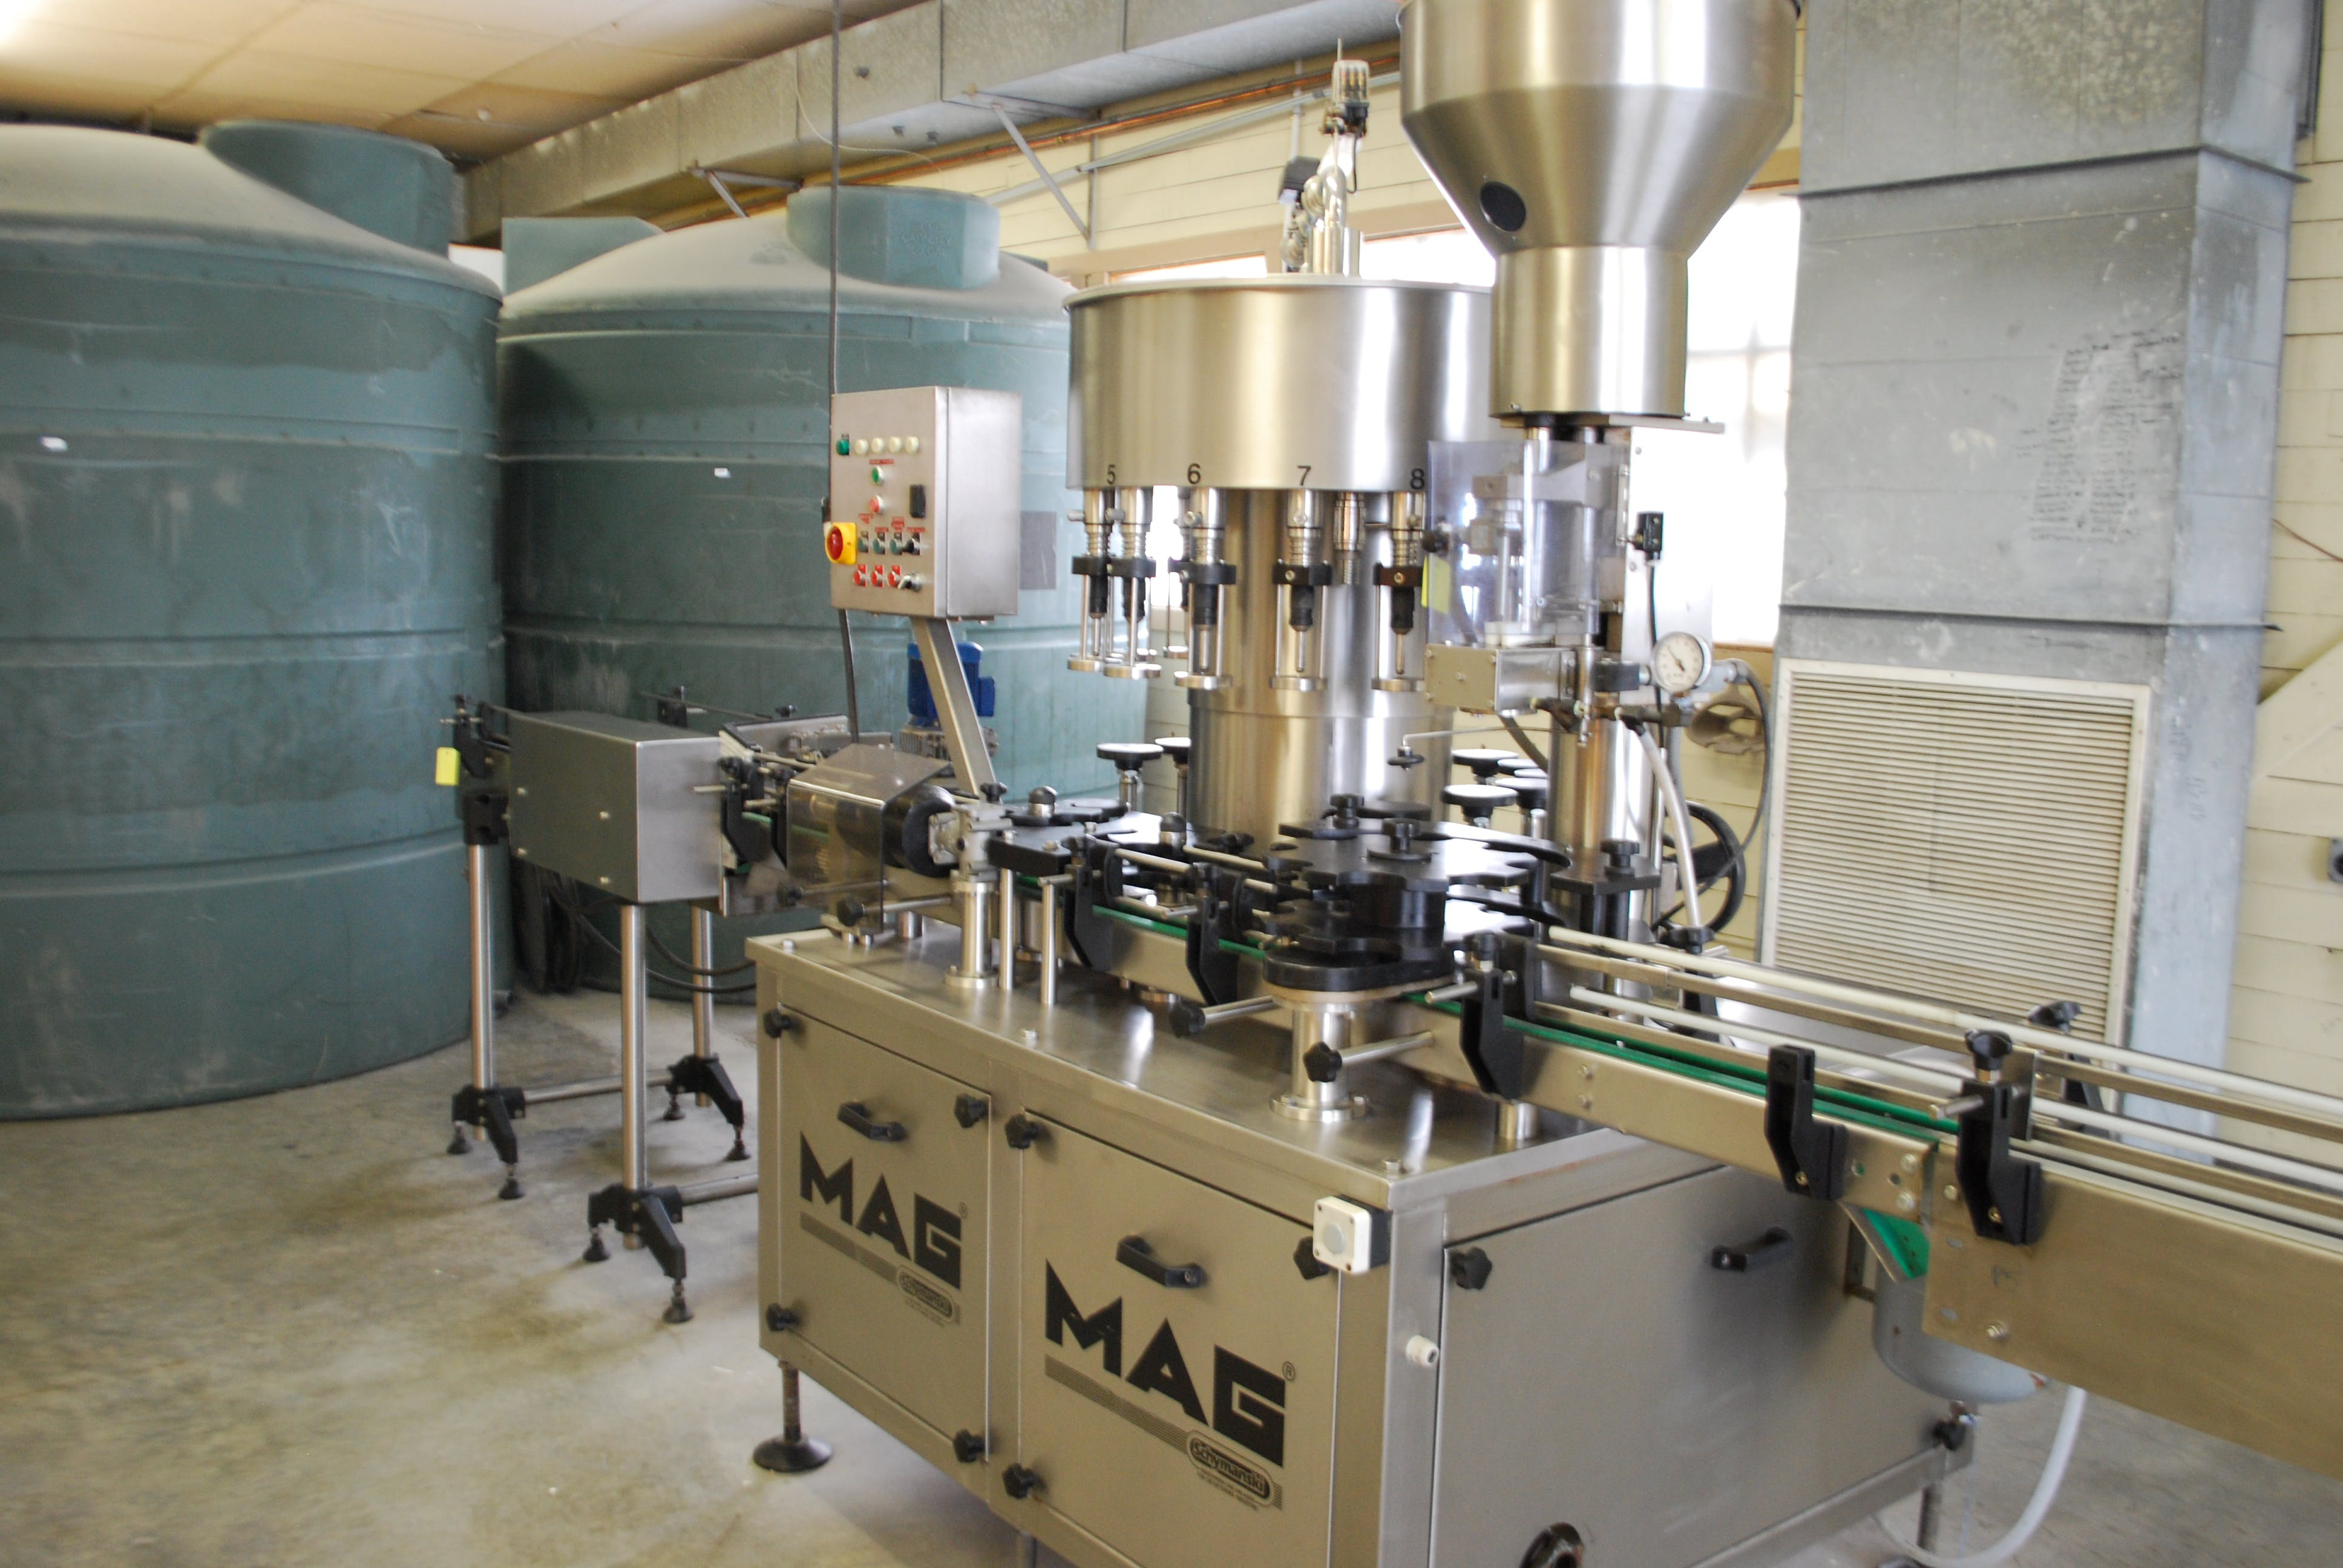 Fimer (MAG) 16/1 filler corker Bottle filler sold by Ager Tank & Equipment Co.